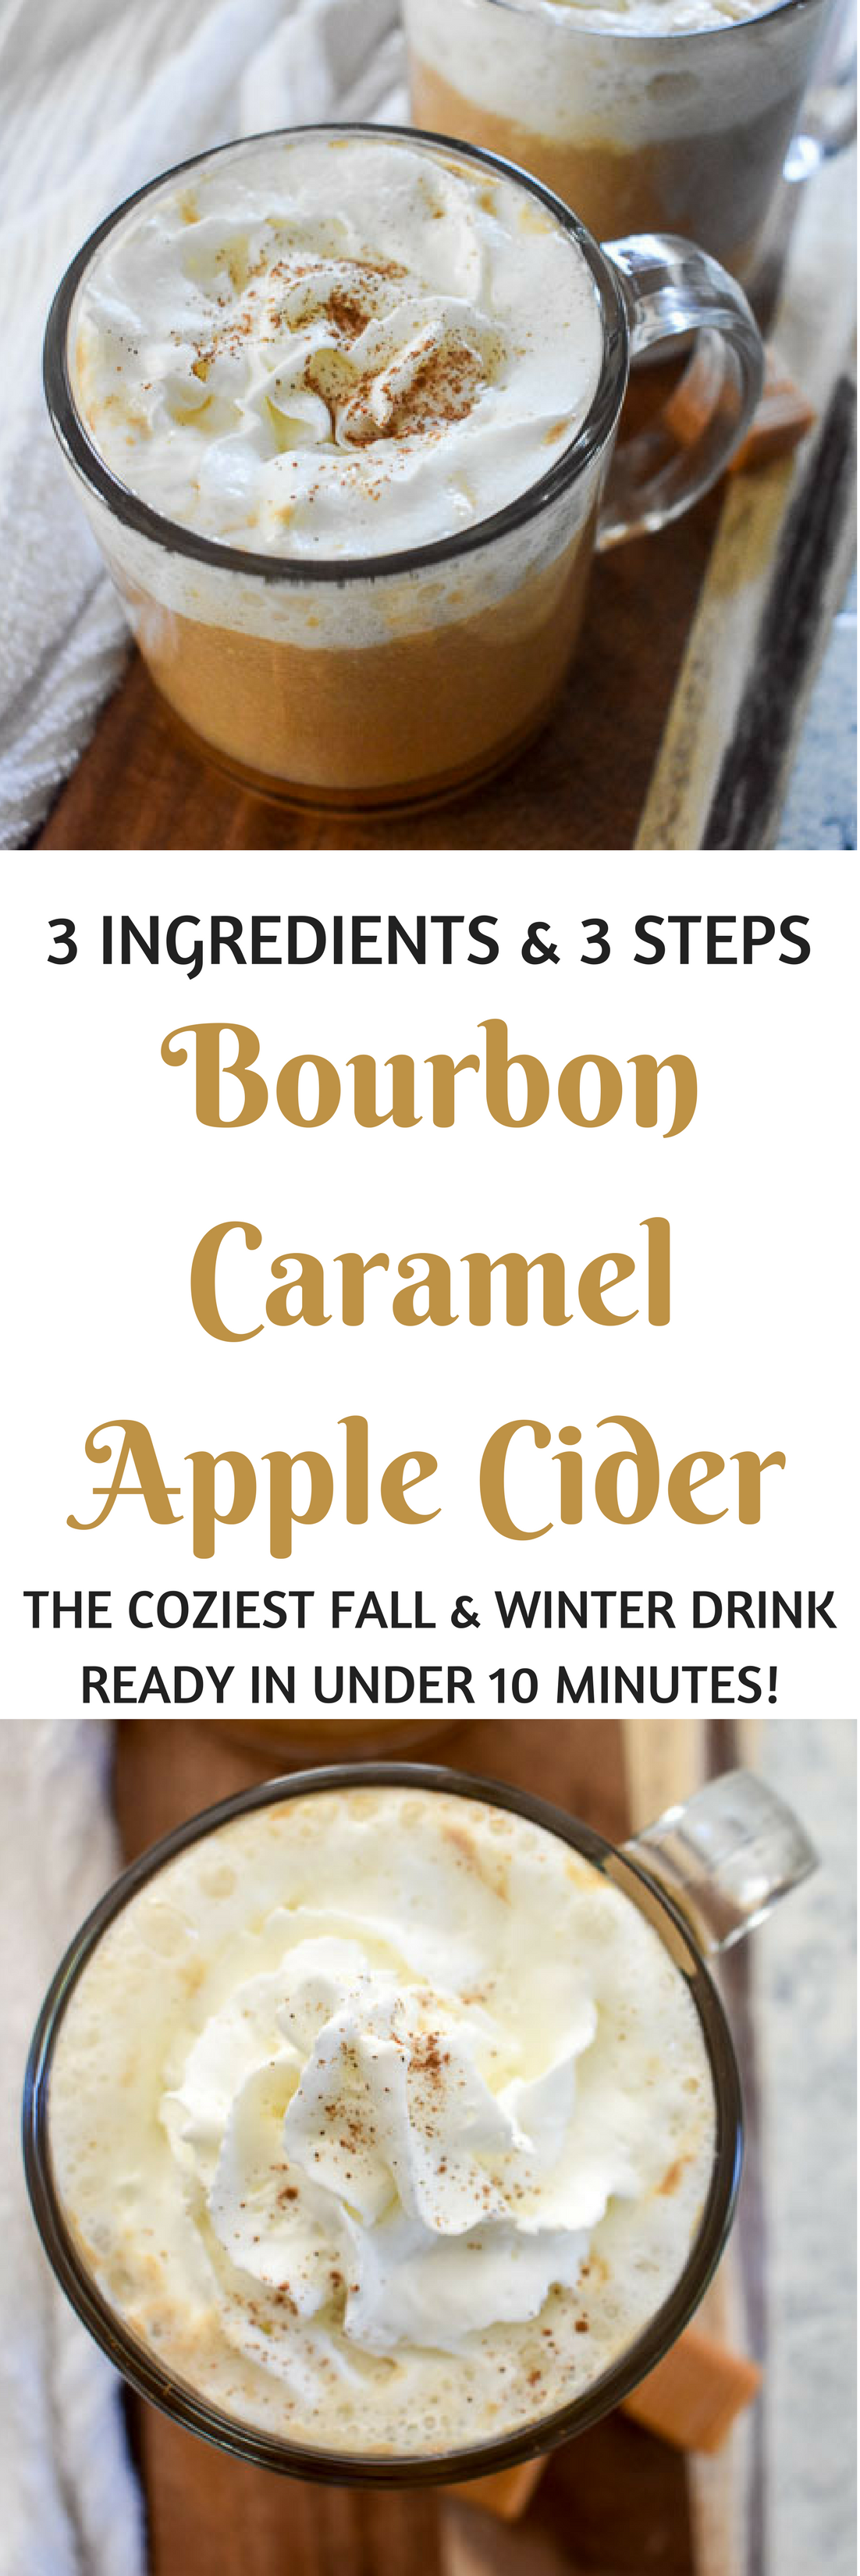 Bourbon Caramel Apple Cider is the perfect cozy fall and winter drink that\'s ready in under ten minutes in three easy steps and with just 3 simple ingredients! Recipe by Dash of Jazz #dashofjazzblog #spikedciderrecipe #easyappleciderrecipe #howtomakeapplecider #spikedapplecider #cozyfalldrinkrecipes